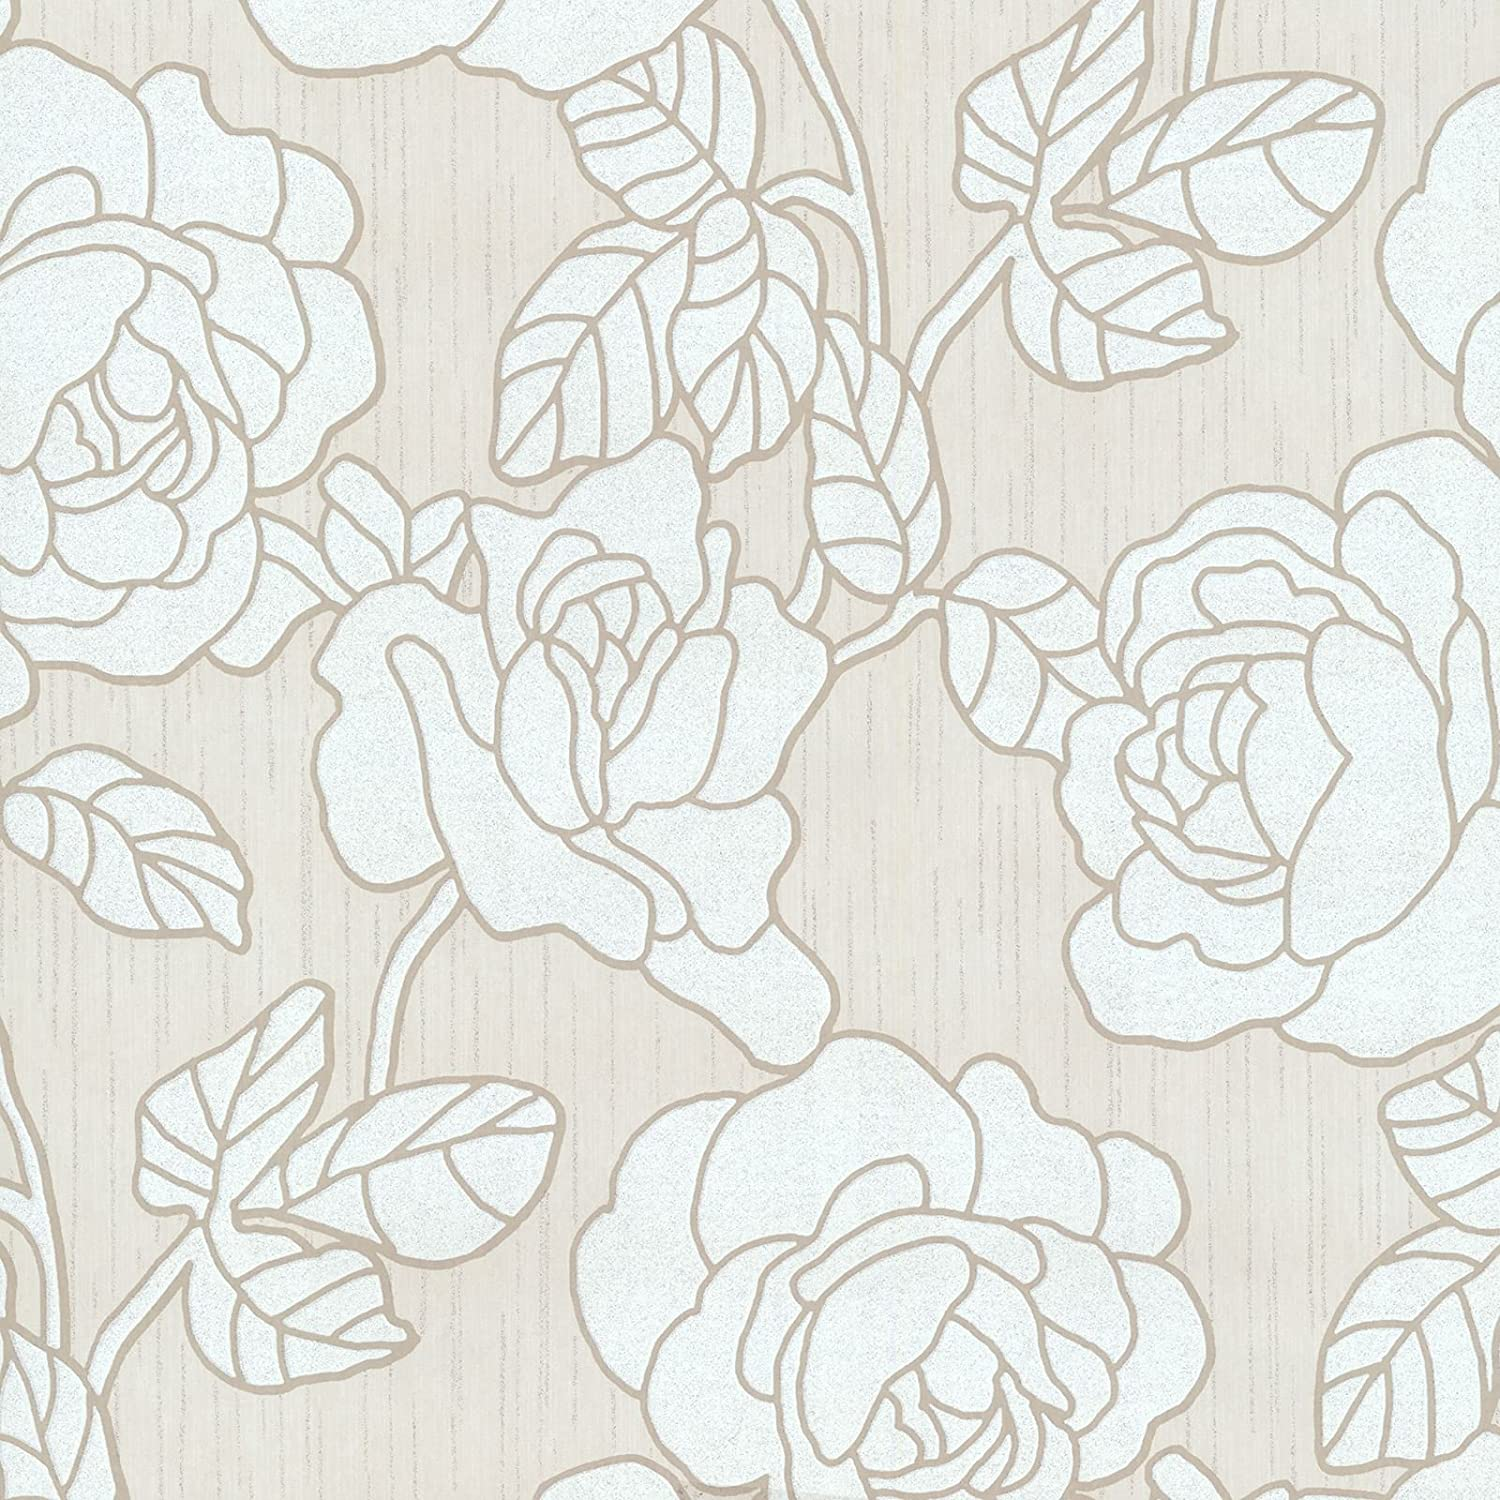 White P S 02492 60 Flowers Opal Floral Glitter Wallpaper Cream Doe